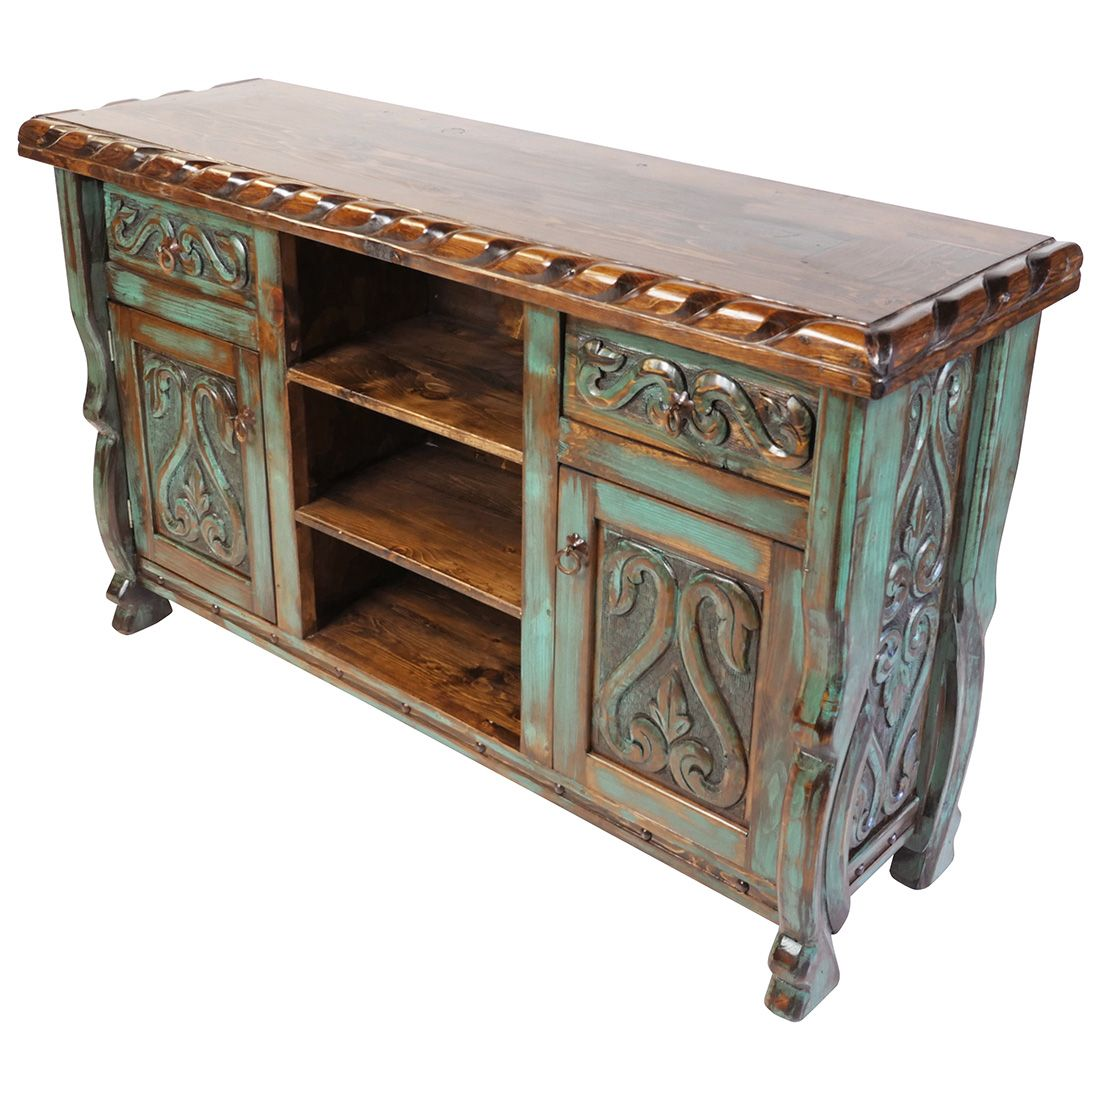 Green Patina Painted Wood Carved Fl Buffet With